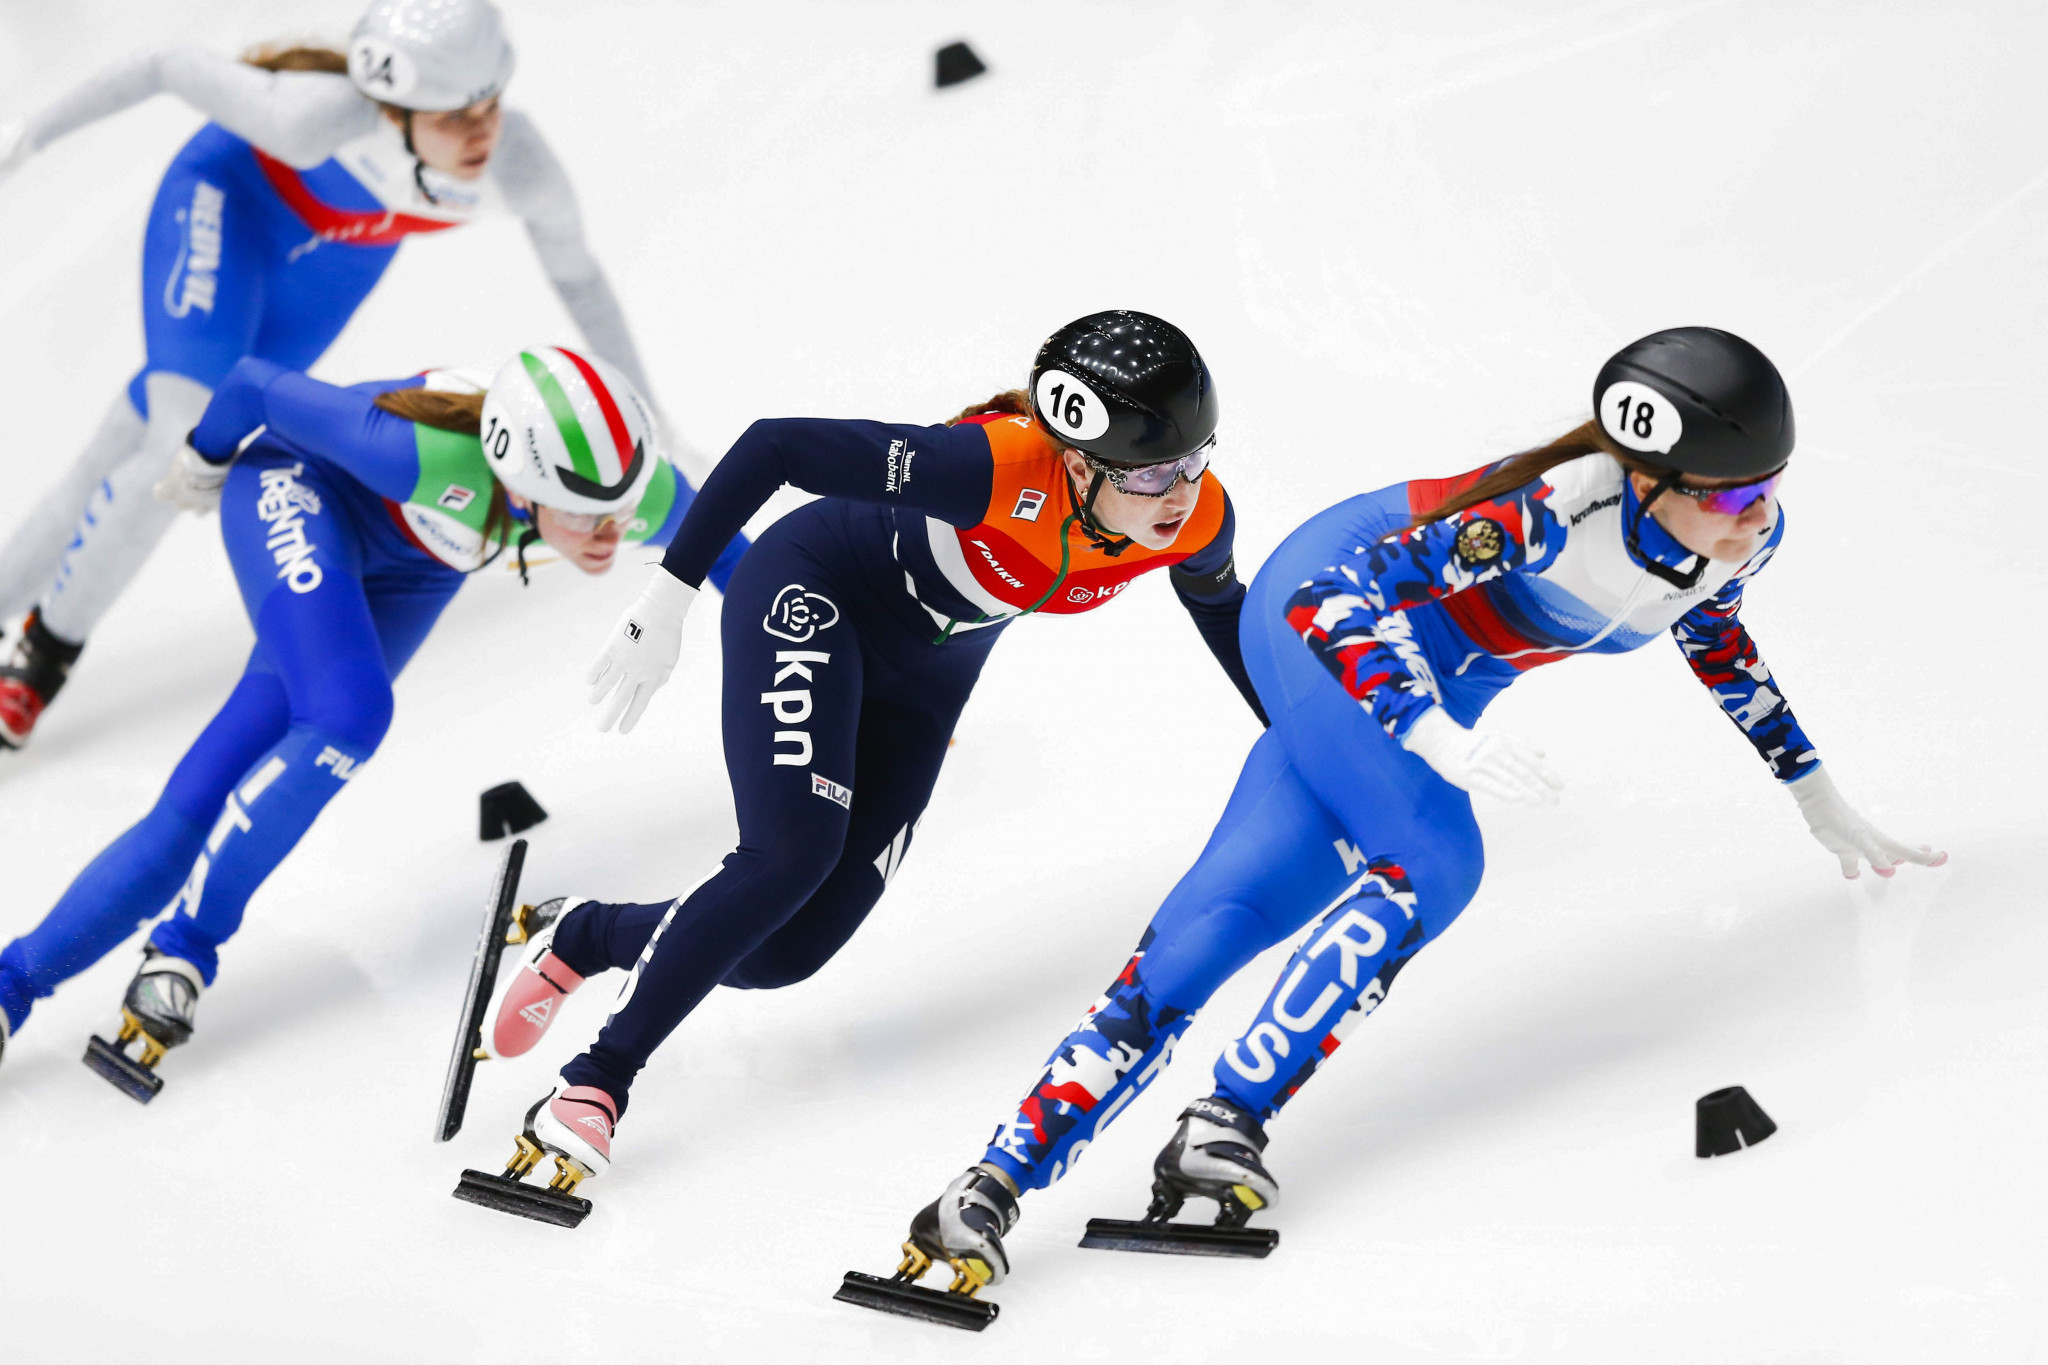 The agreements includes World and European Championships across disciplines governed by the ISU ©Getty Images